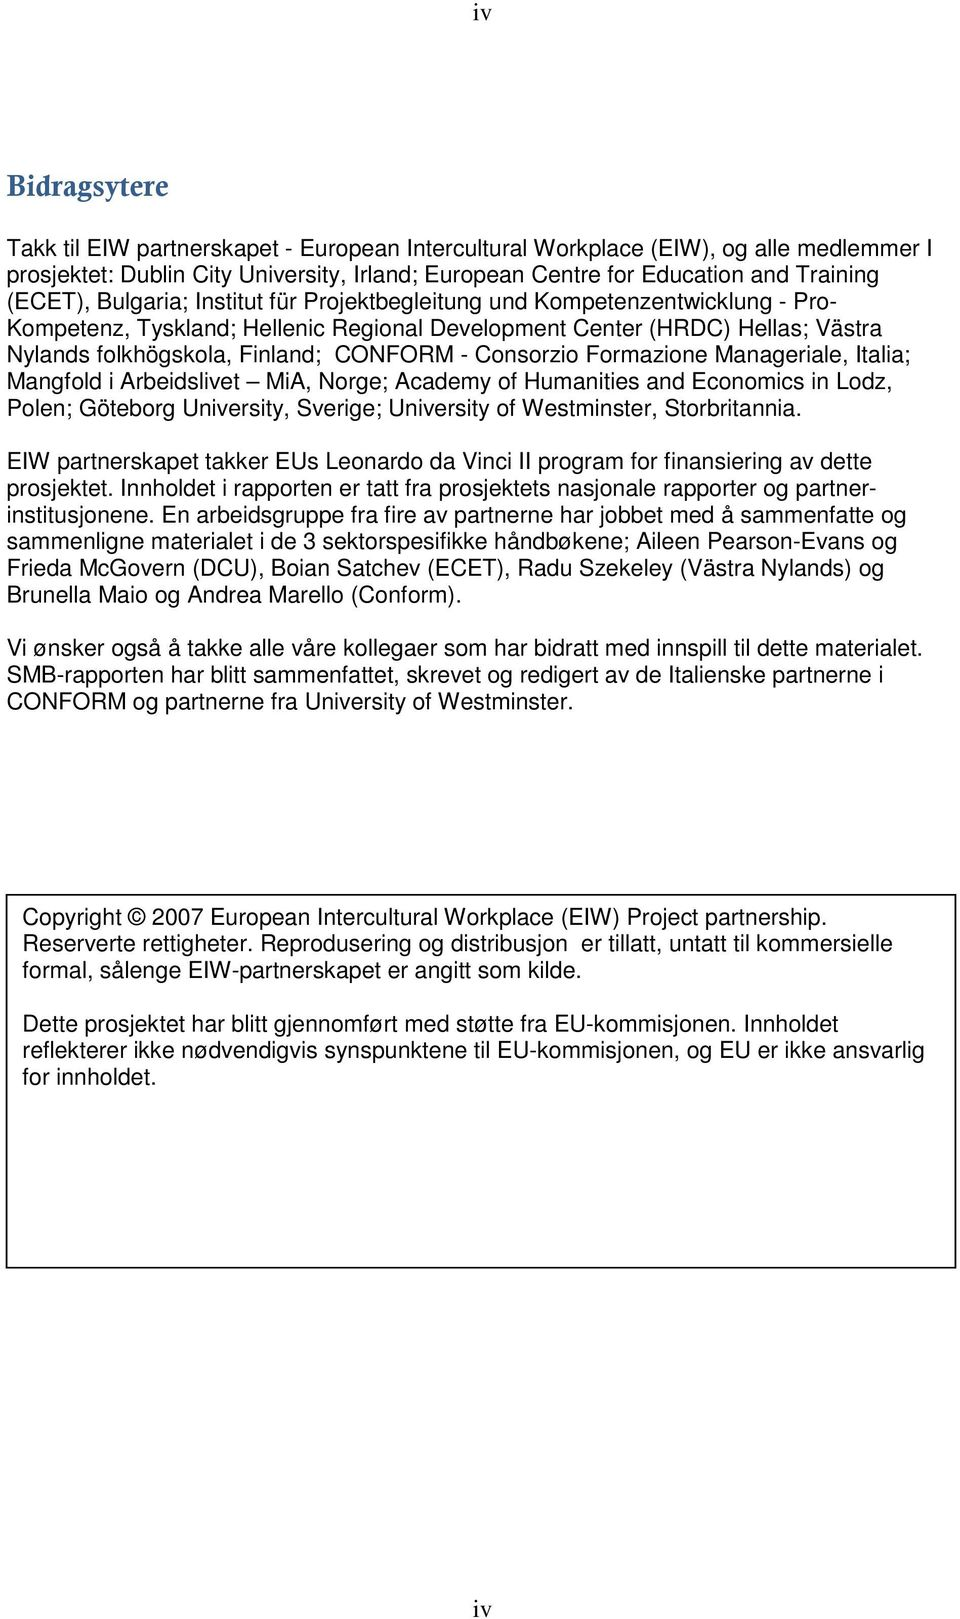 Consorzio Formazione Manageriale, Italia; Mangfold i Arbeidslivet MiA, Norge; Academy of Humanities and Economics in Lodz, Polen; Göteborg University, Sverige; University of Westminster,